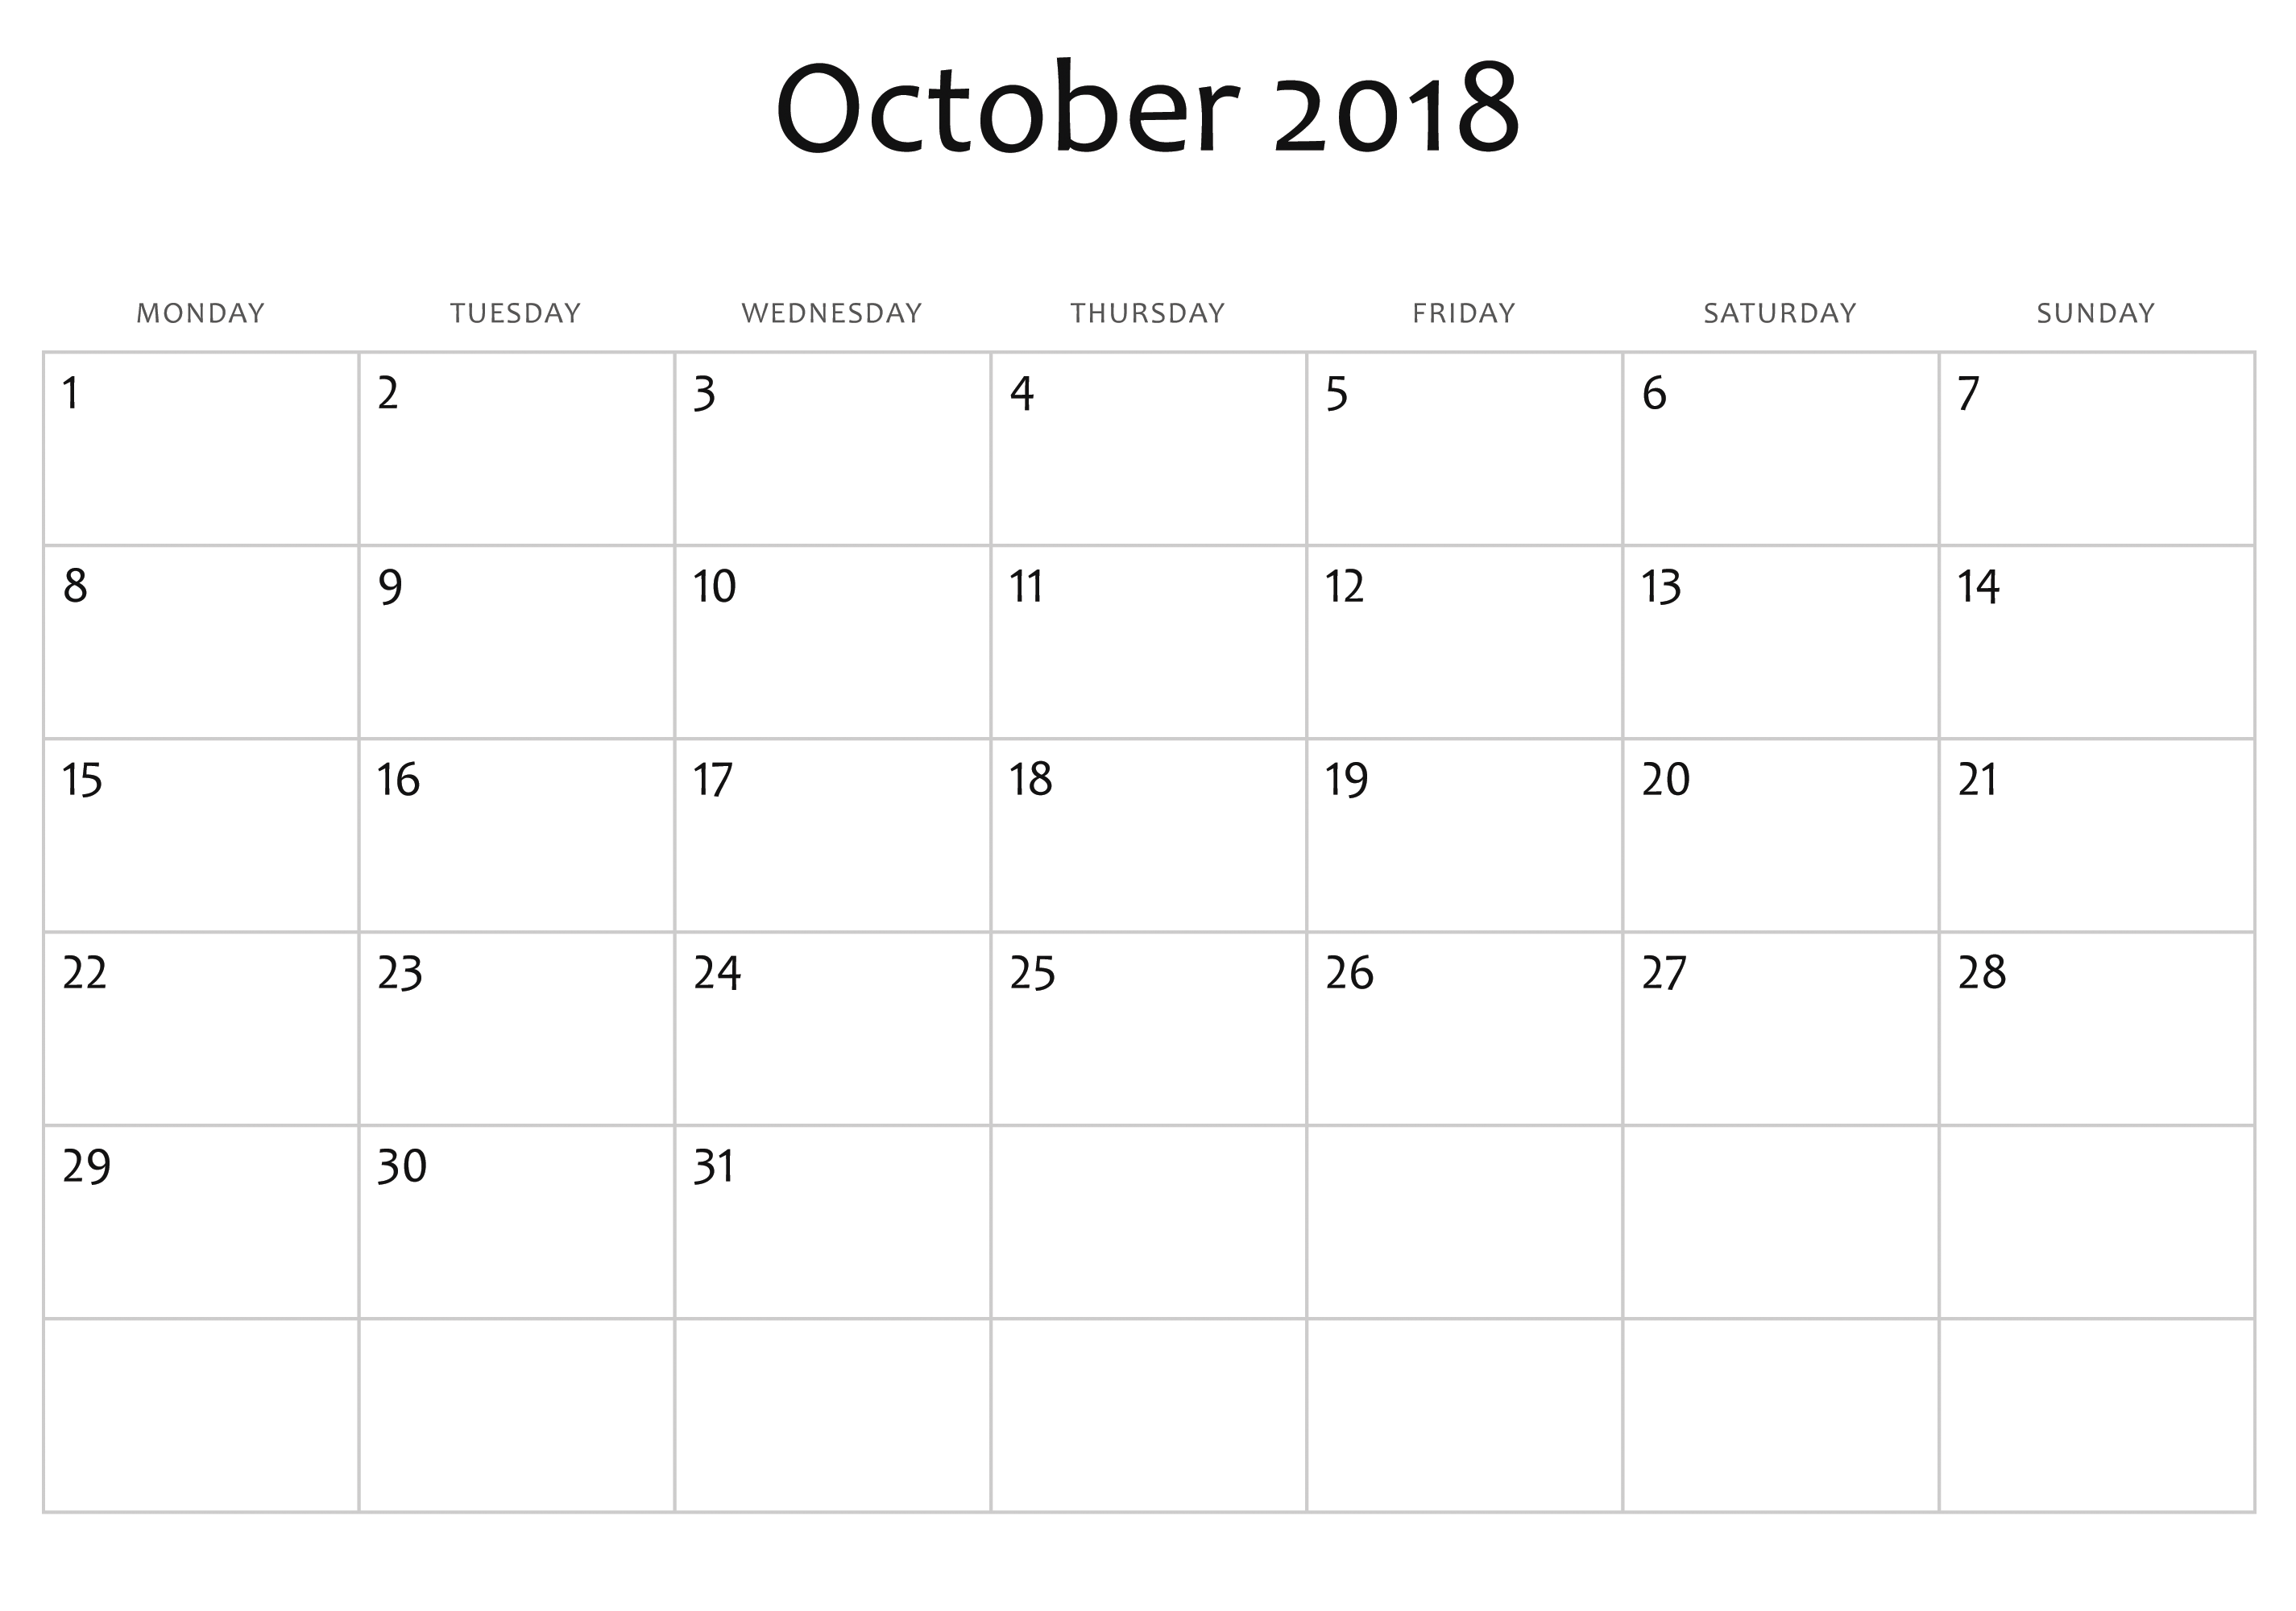 october 2018 calendar editable full october 2018 calendar